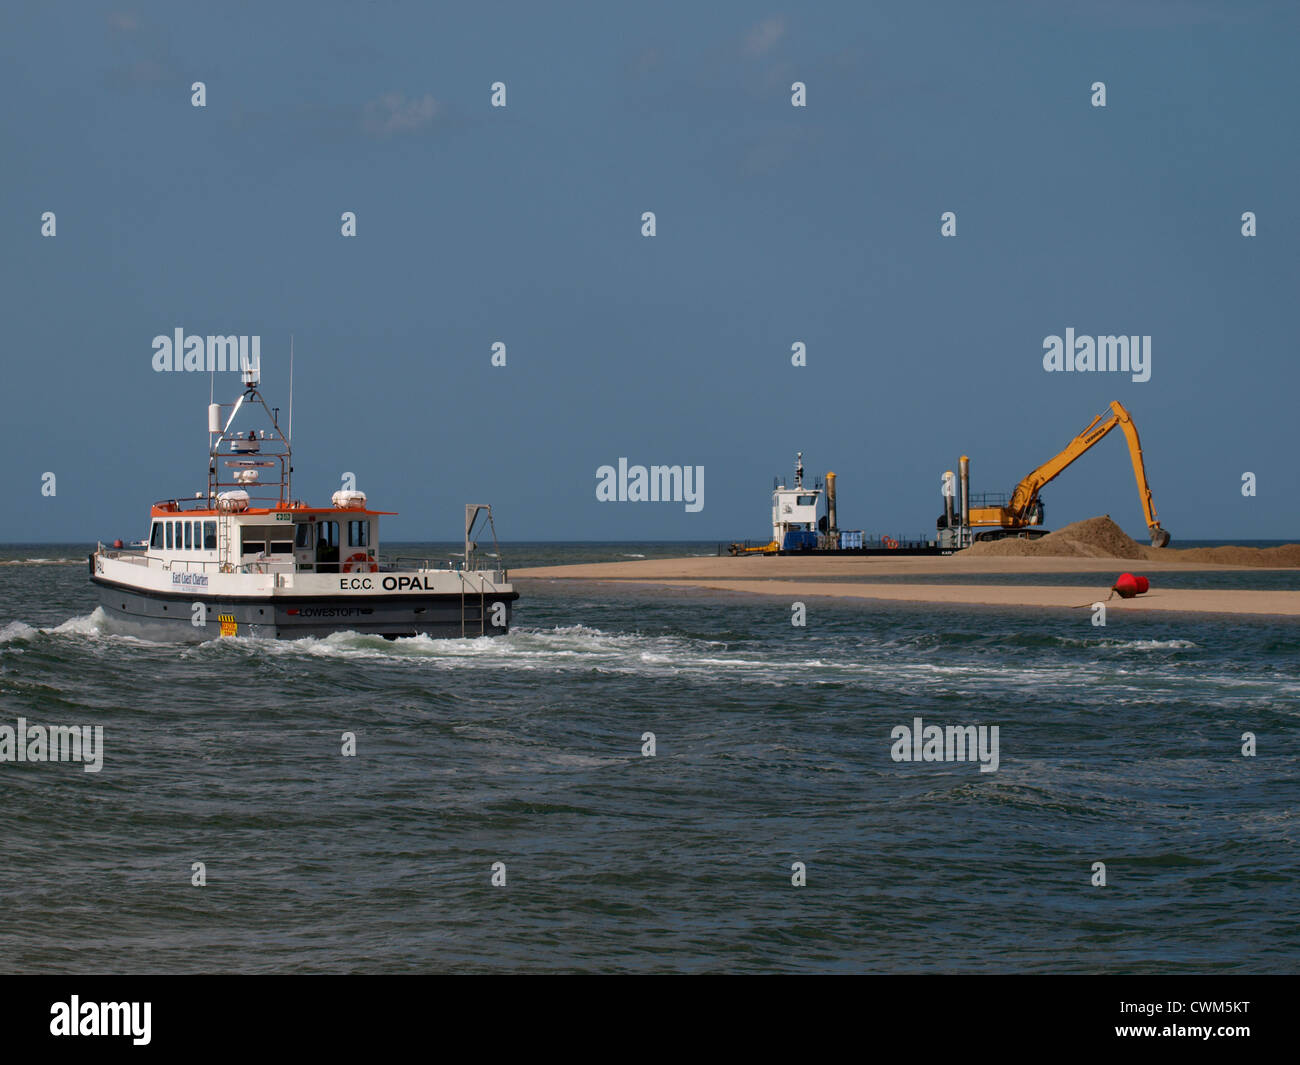 Motor Dredger Stock Photos & Motor Dredger Stock Images - Alamy